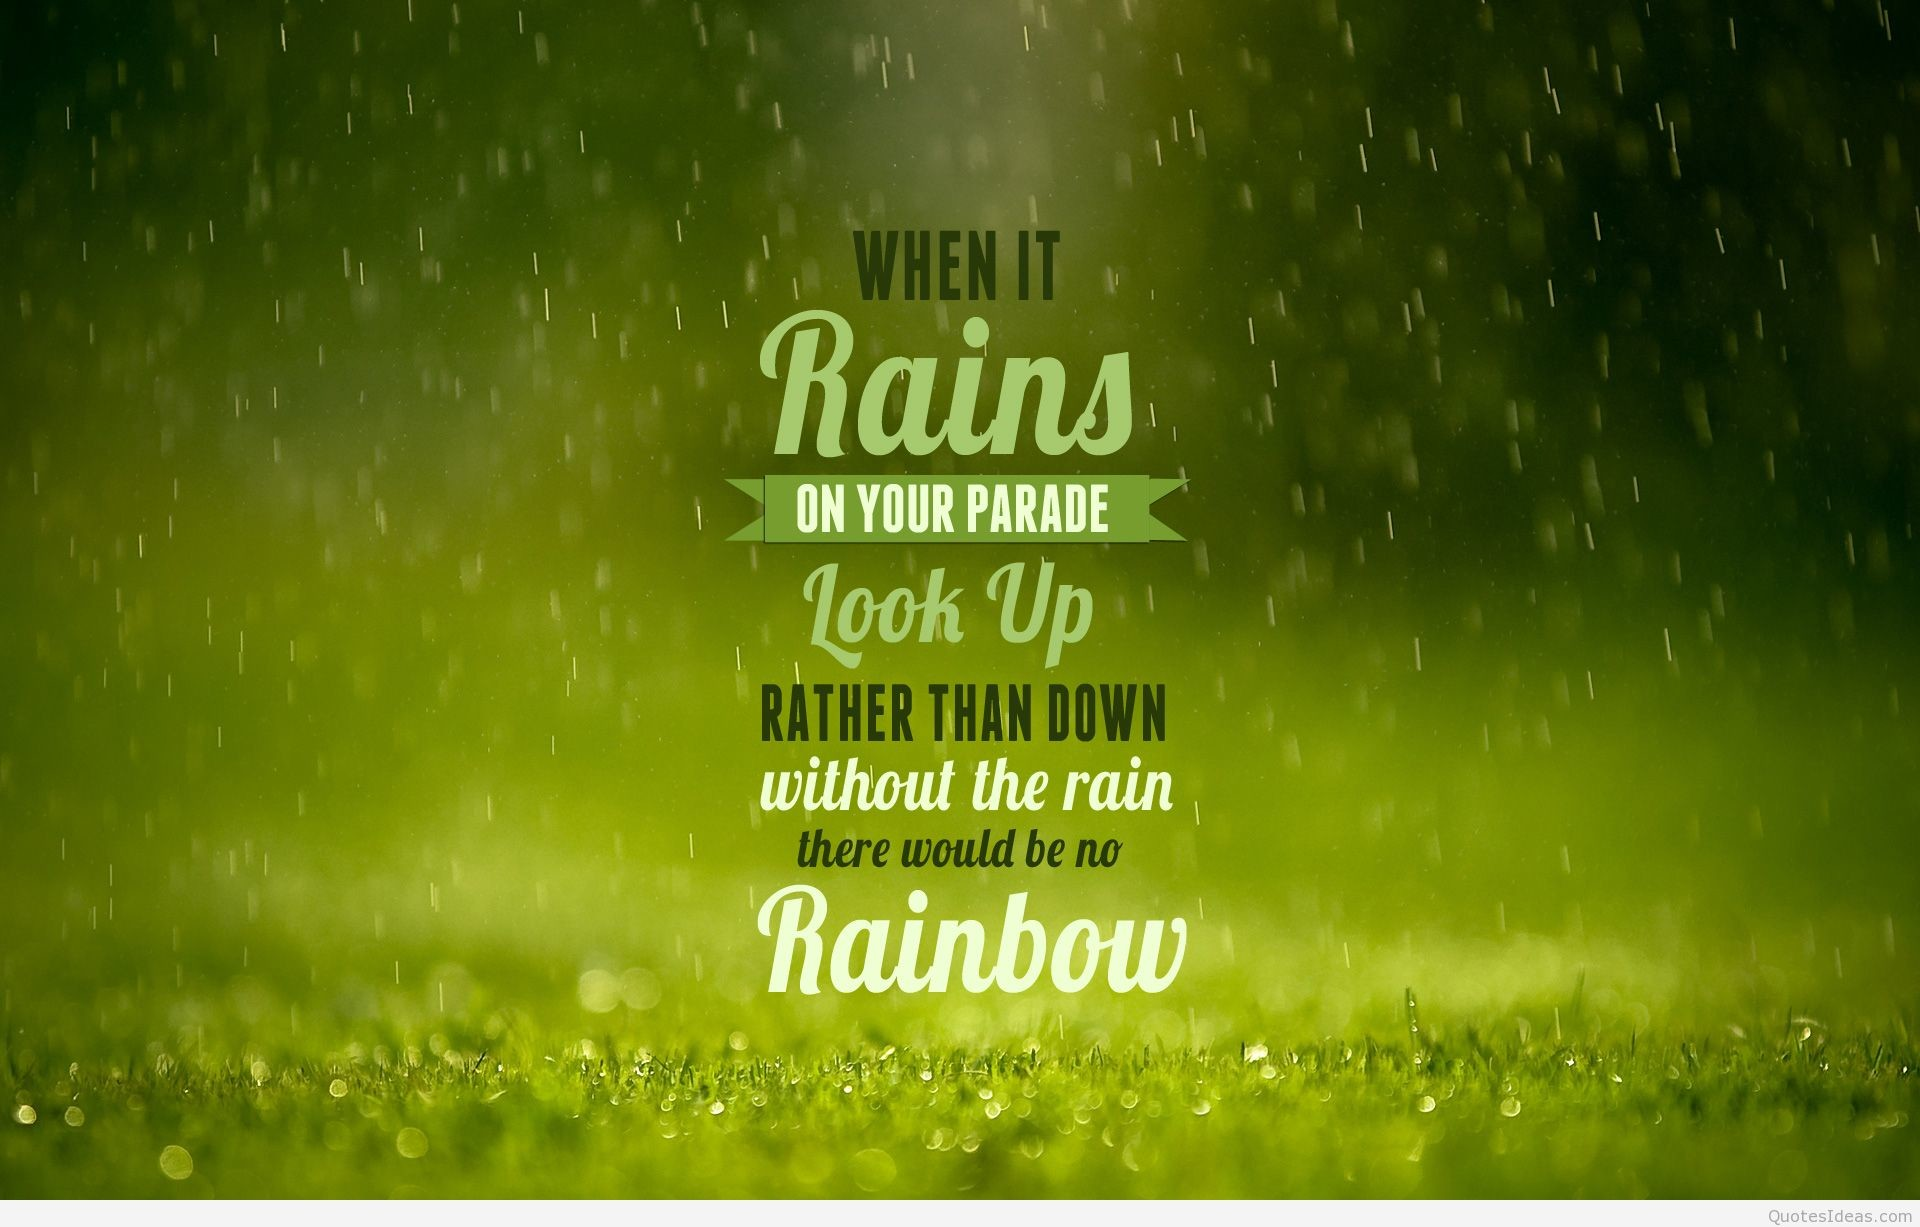 Raindrops Wallpaper Iphone Beautiful Rain Drops Wallpapers With Quotes 52 Images